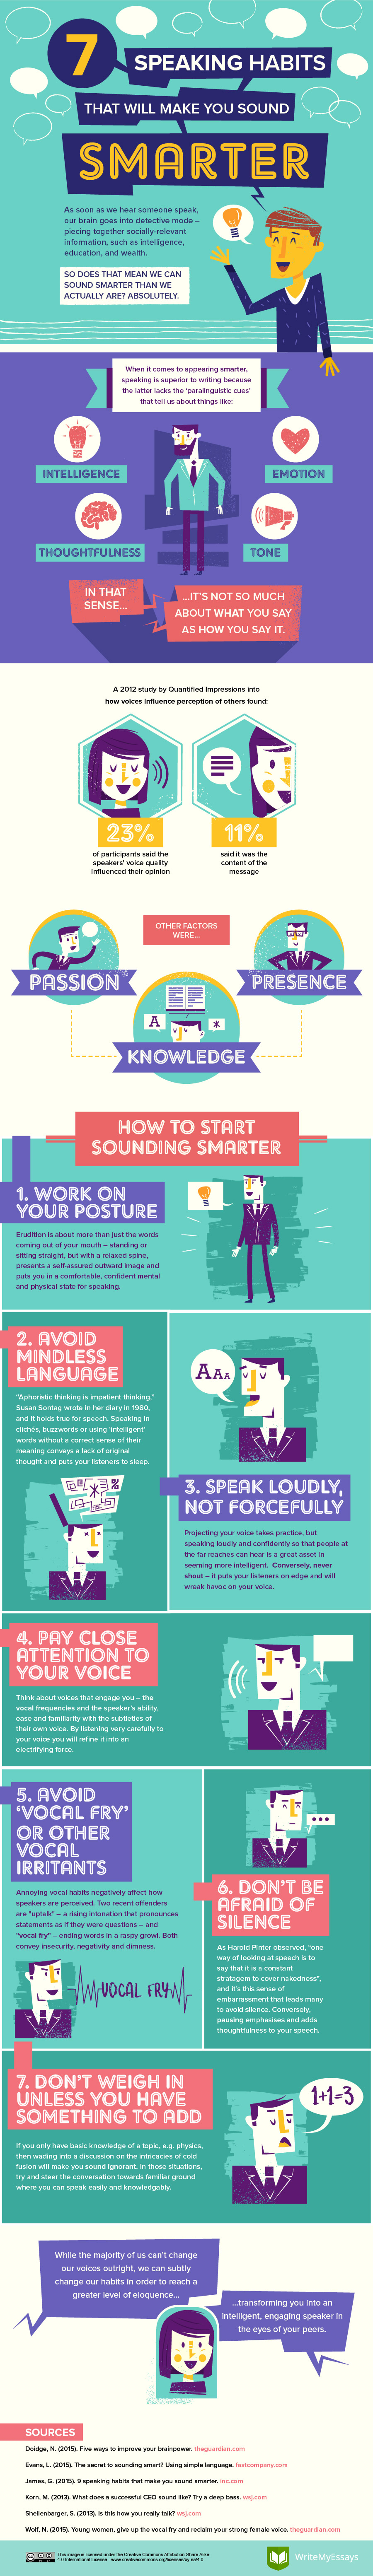 7-speaking-habits-that-make-you-sounds-smarter